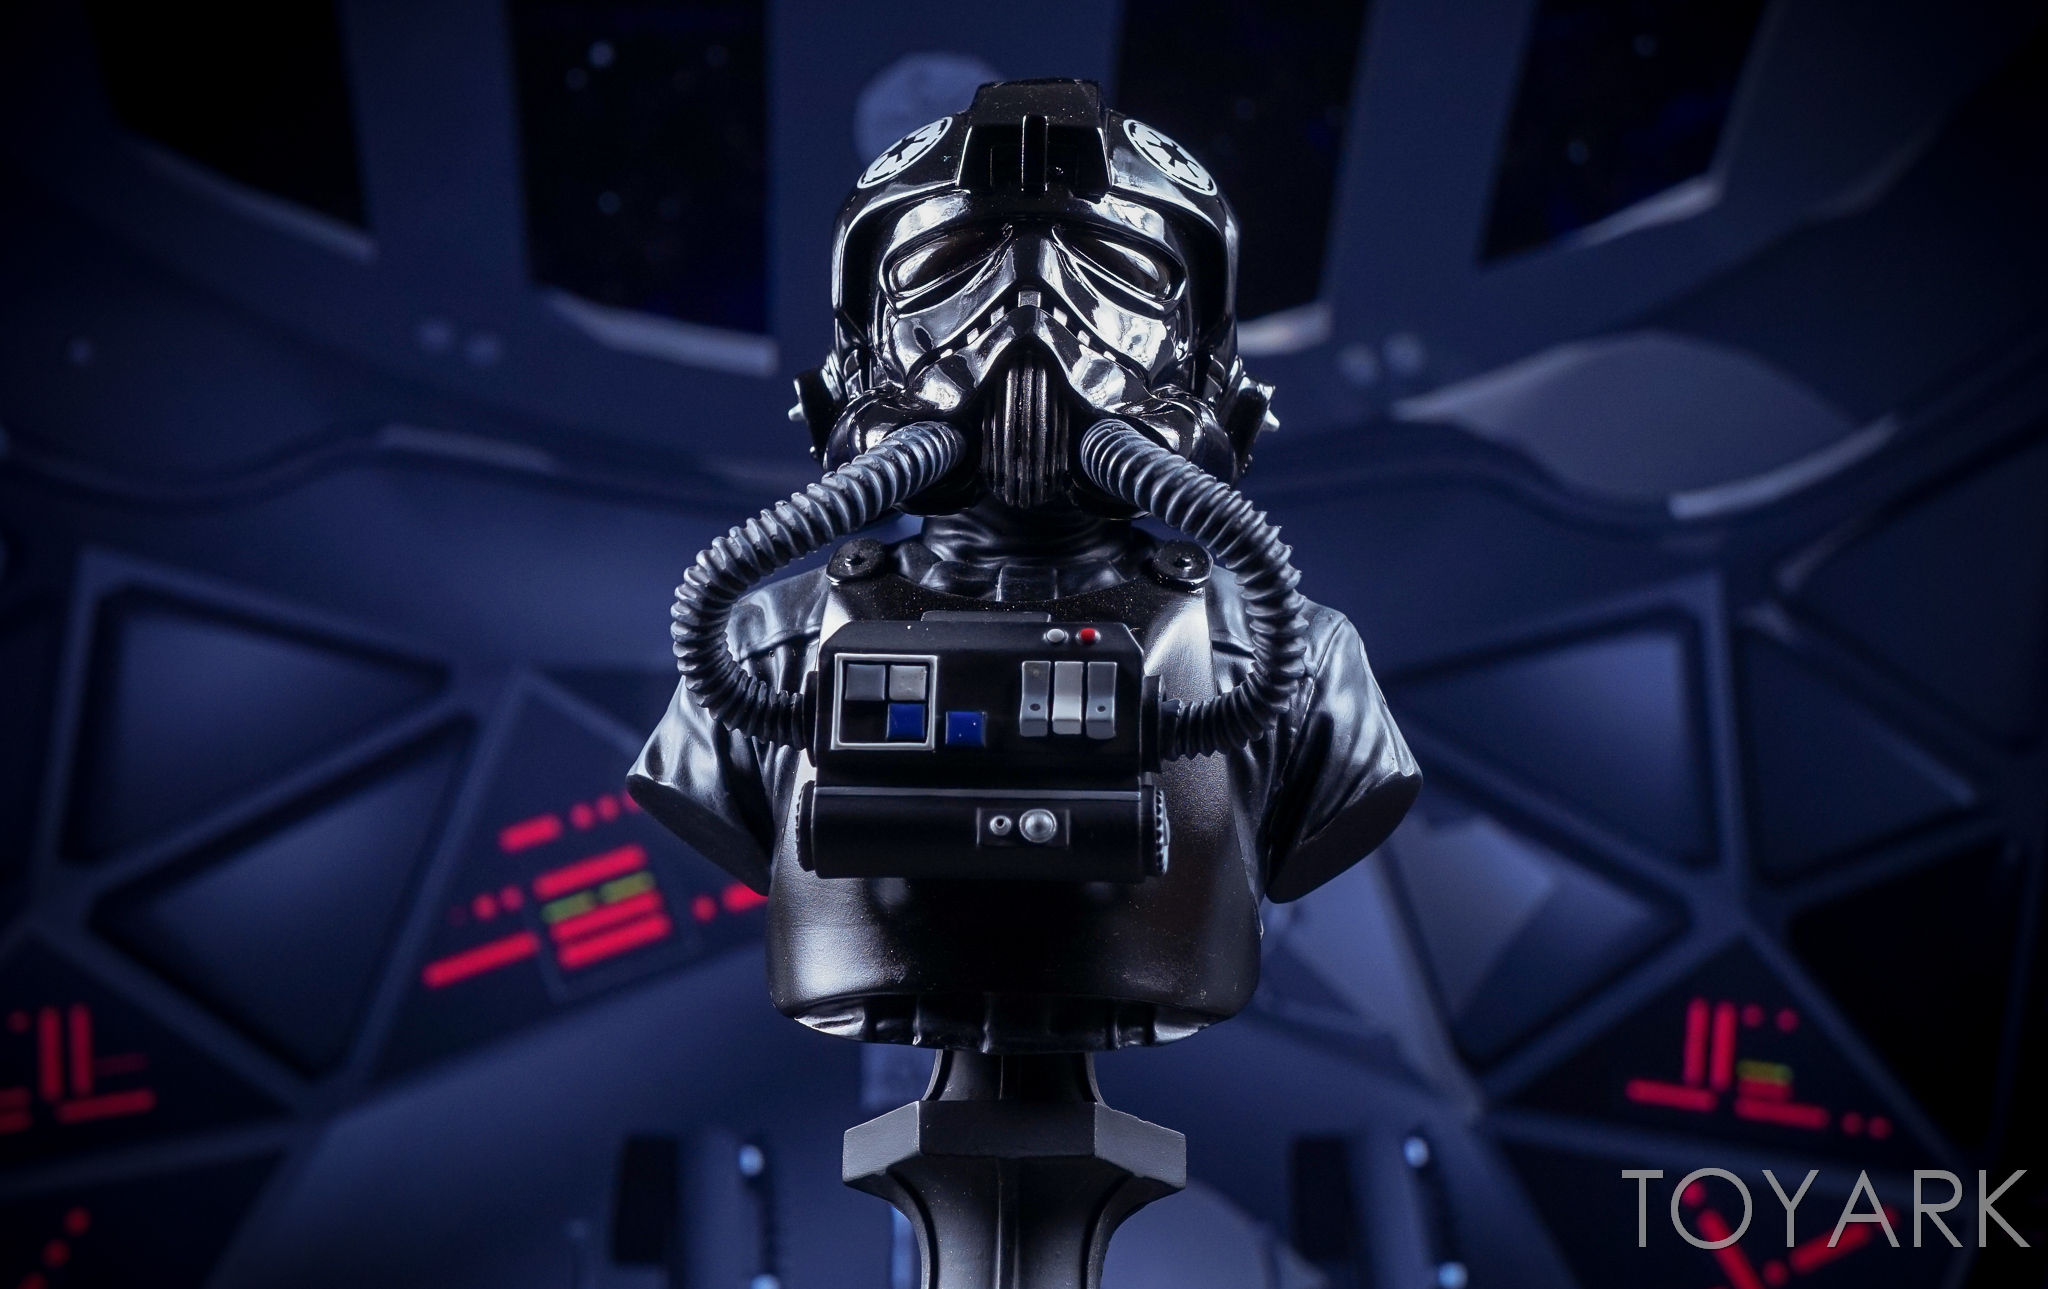 http://news.toyark.com/wp-content/uploads/sites/4/2016/09/GG-Star-Wars-TIE-Fighter-Pilot-Bust-028.jpg